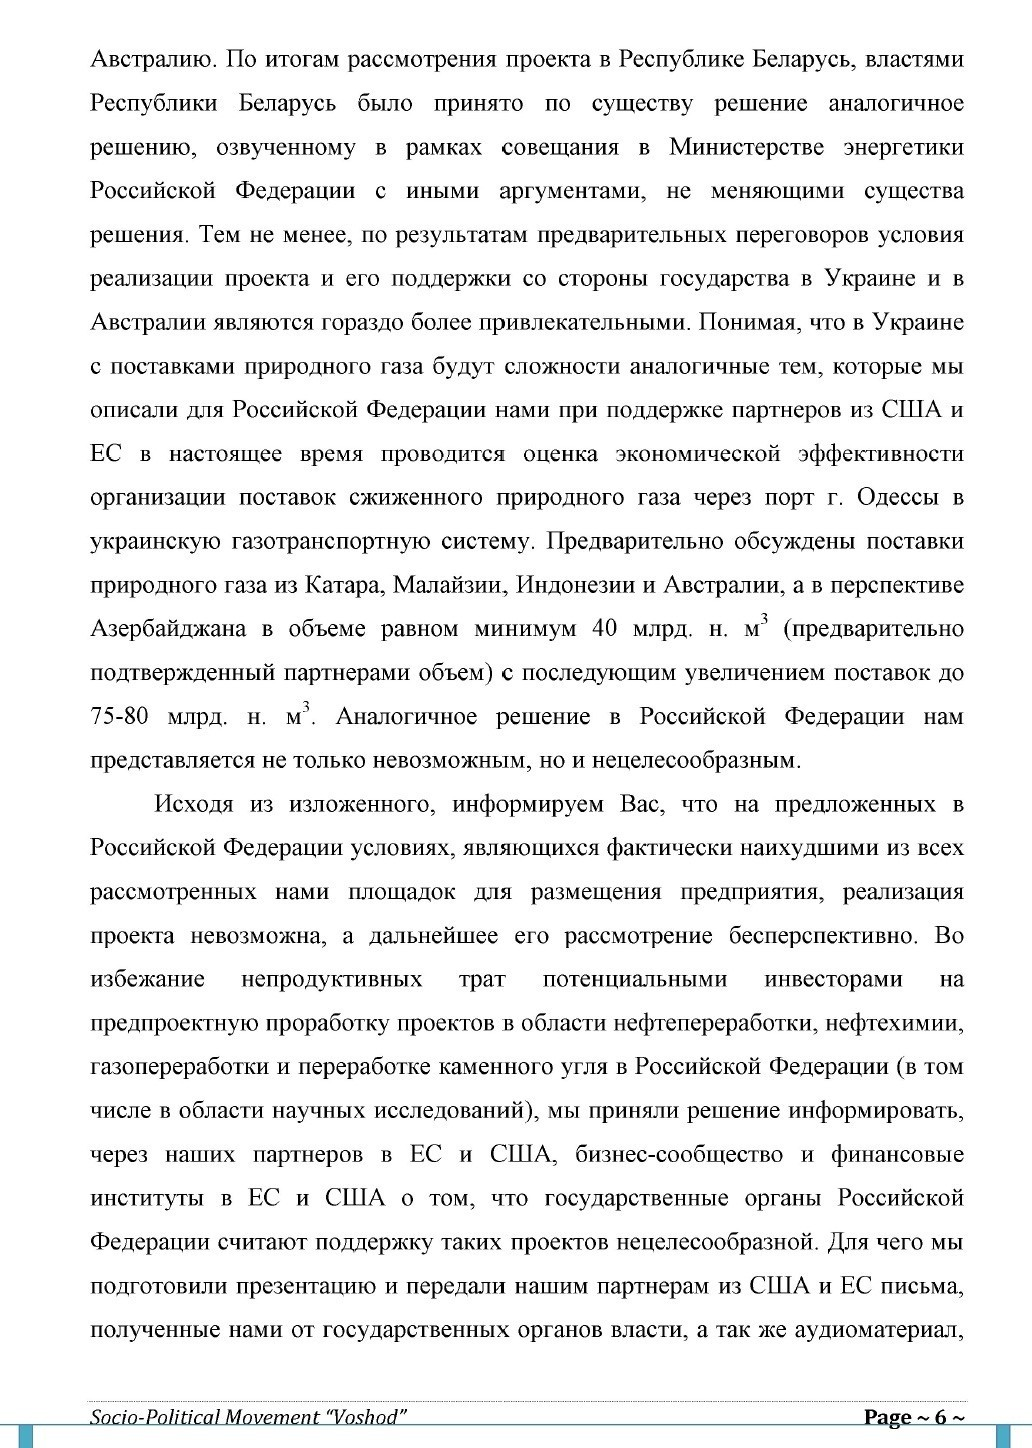 Letter to President of Russia N37-6